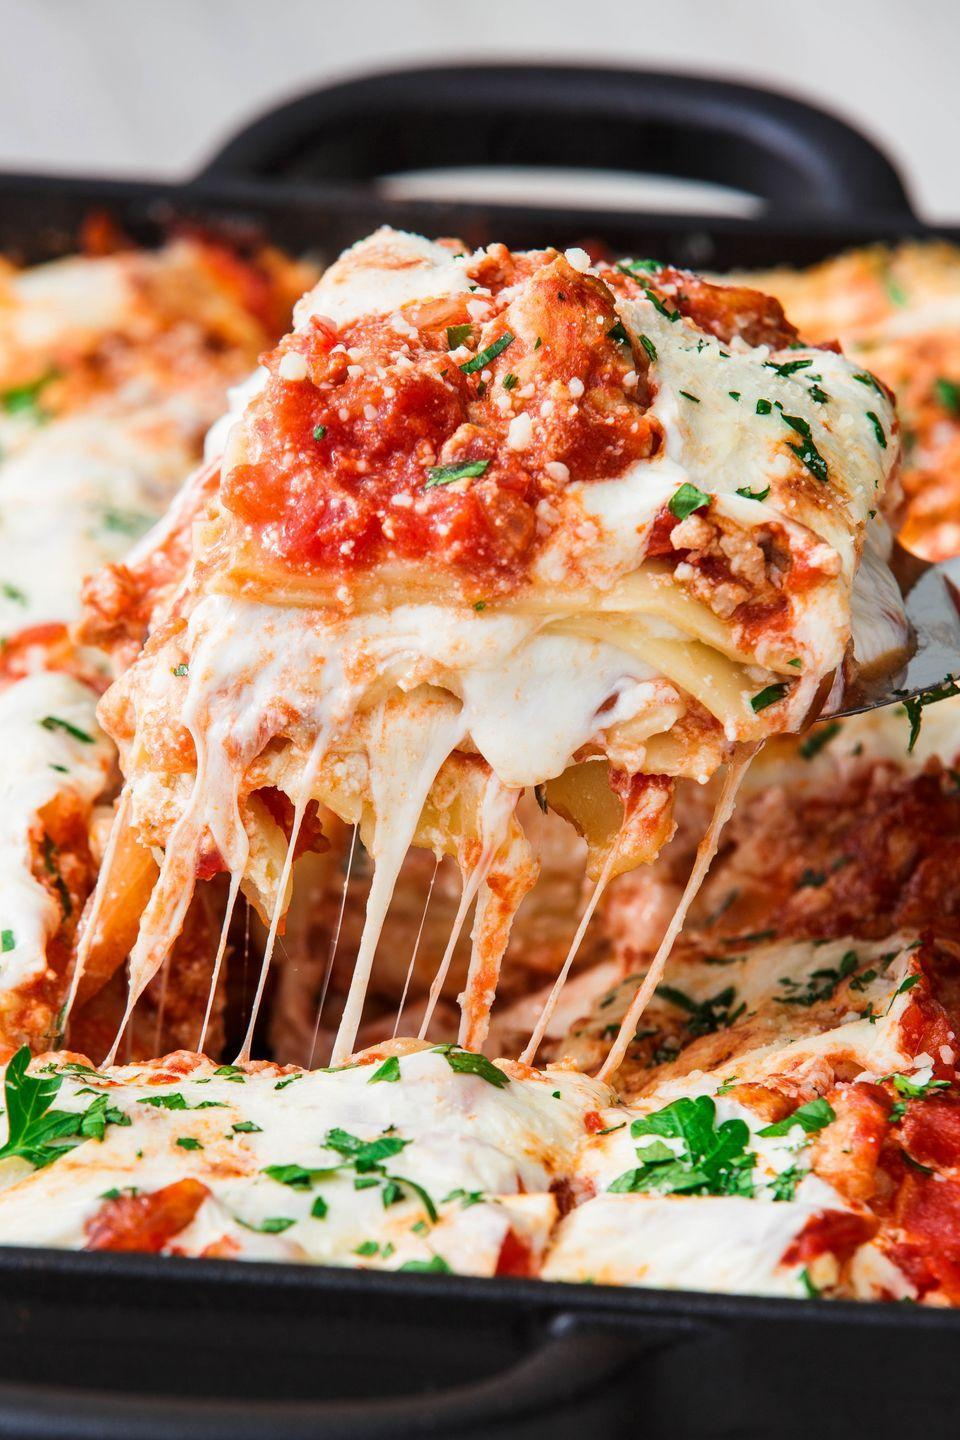 """<p>Everything you love about a <a href=""""https://www.delish.com/cooking/recipe-ideas/recipes/a51337/classic-lasagna-recipe/"""" rel=""""nofollow noopener"""" target=""""_blank"""" data-ylk=""""slk:traditional lasagna"""" class=""""link rapid-noclick-resp"""">traditional lasagna</a>, only you'll feel a little better after destroying a big slice. </p><p>Get the recipe from <a href=""""https://www.delish.com/cooking/recipe-ideas/a23480922/turkey-lasagna-recipe/"""" rel=""""nofollow noopener"""" target=""""_blank"""" data-ylk=""""slk:Delish"""" class=""""link rapid-noclick-resp"""">Delish</a>. </p>"""